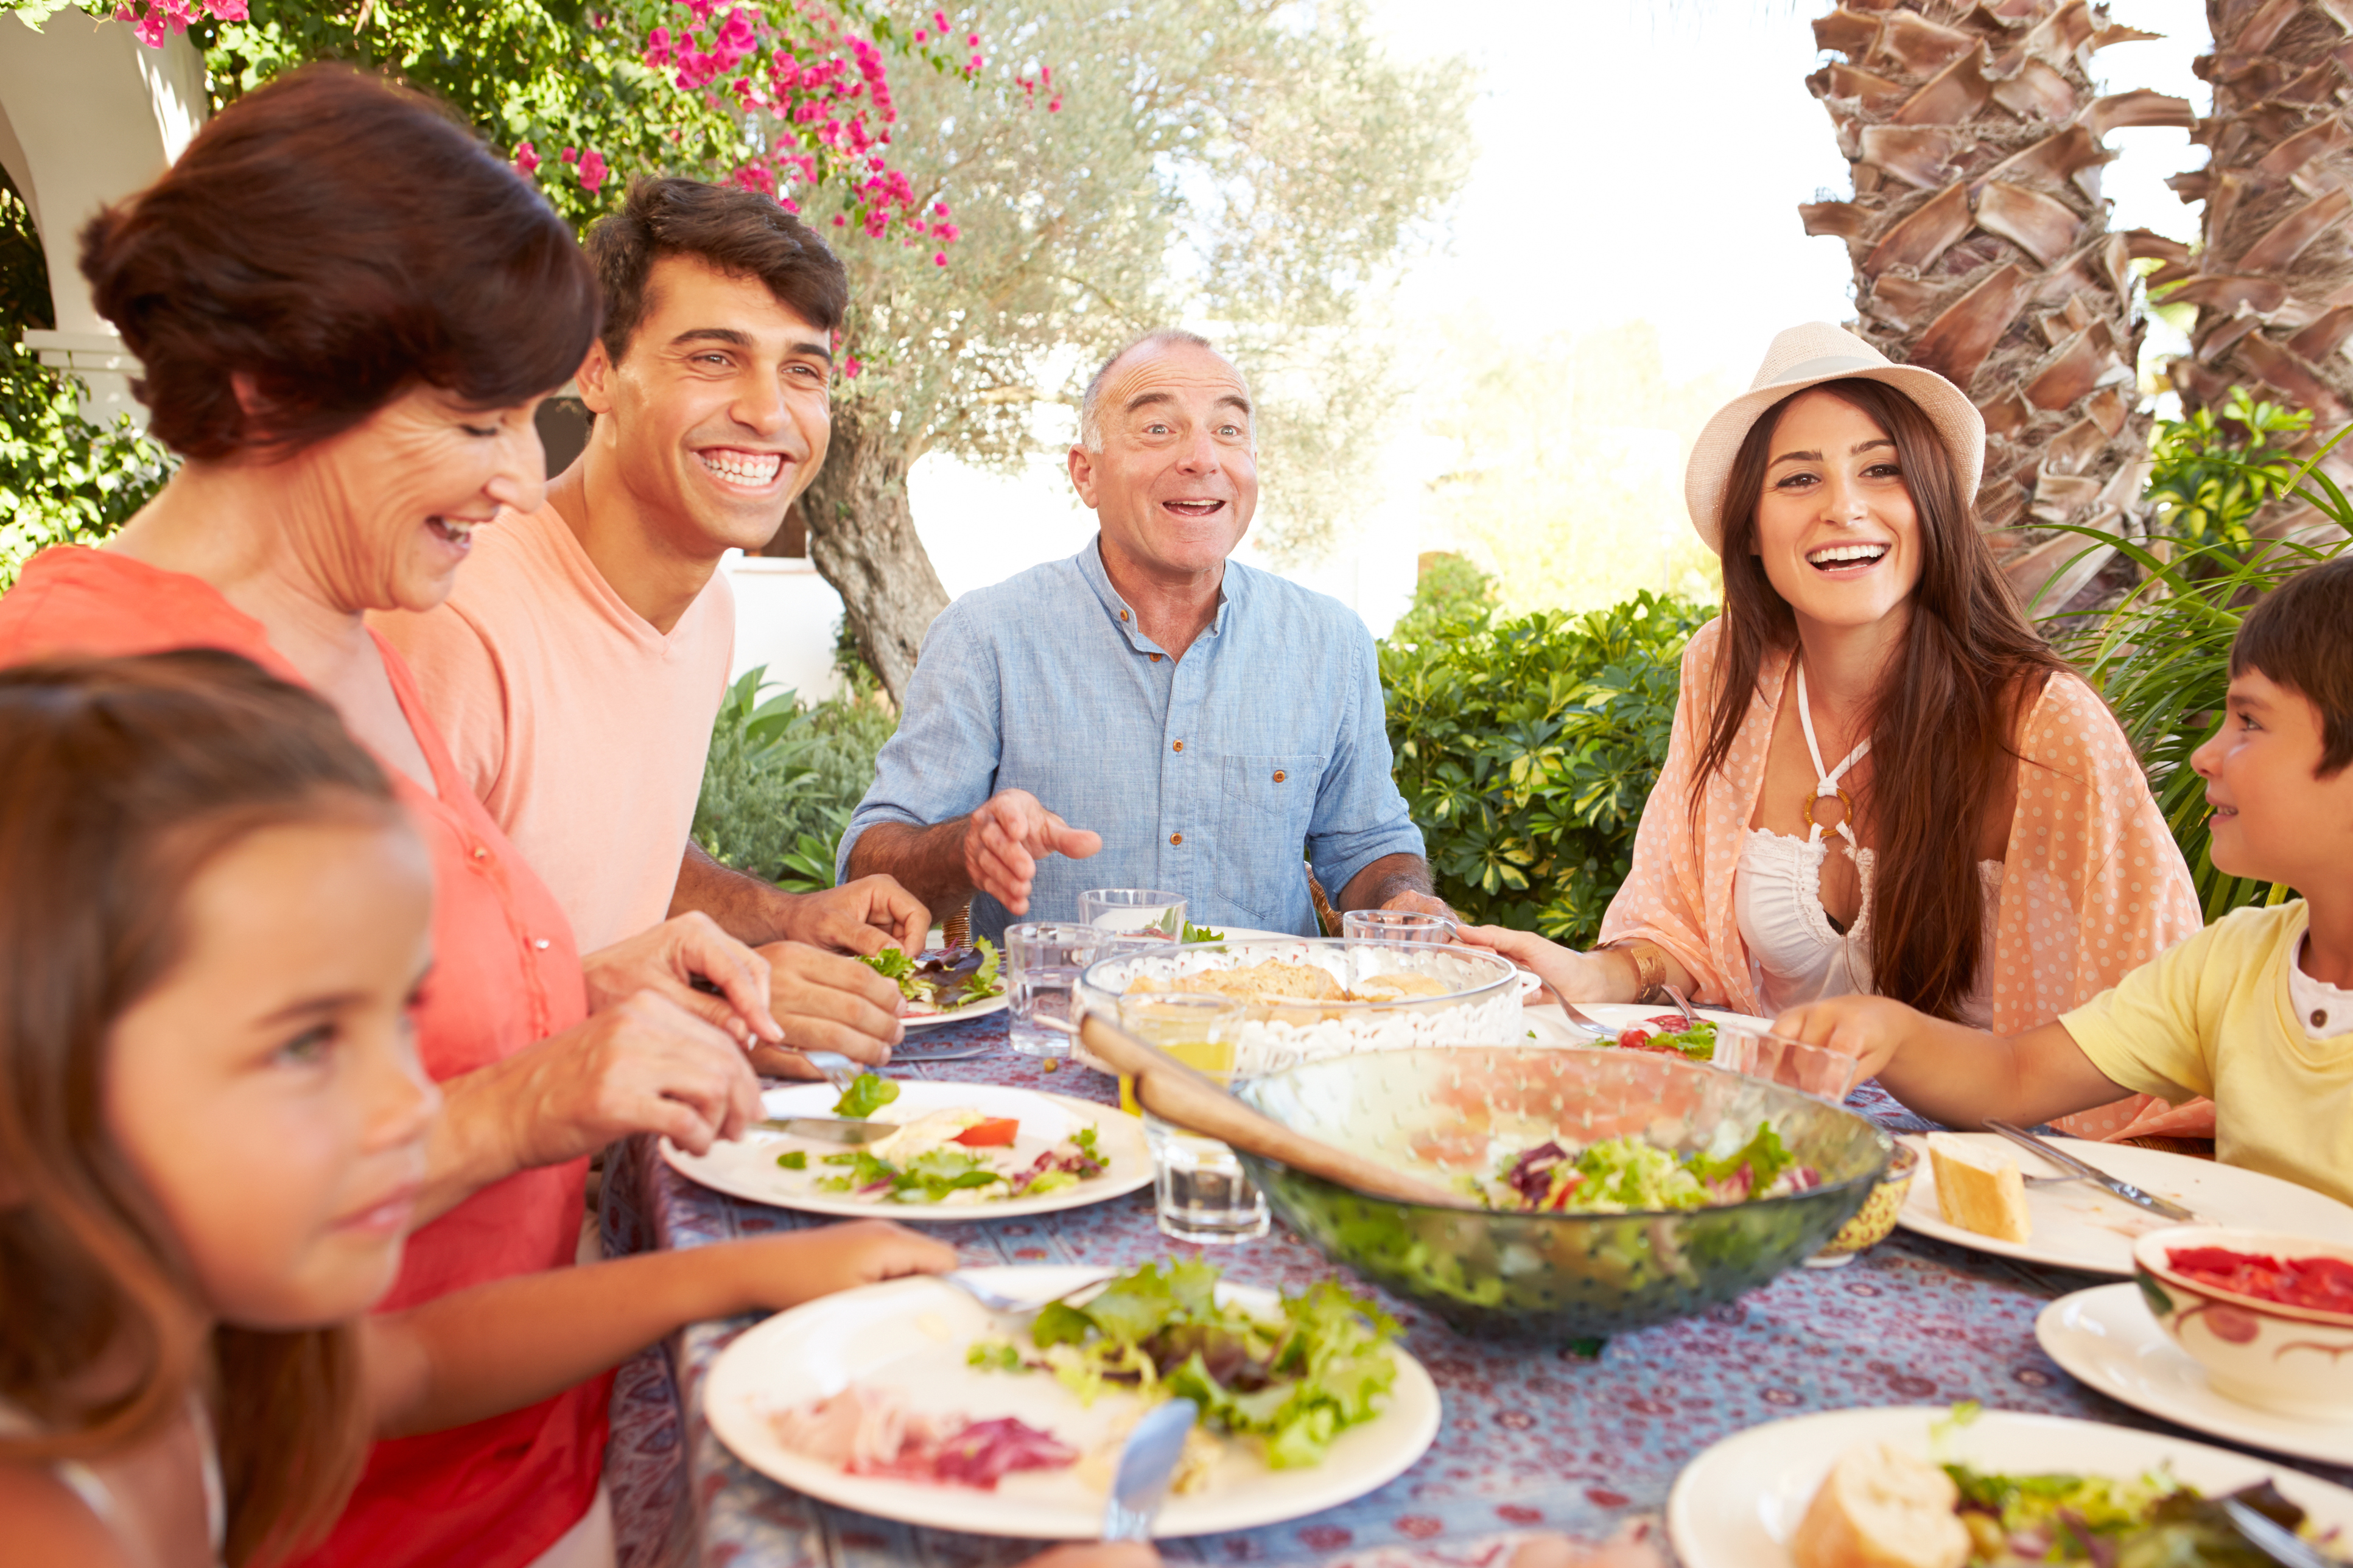 Hispanic family talking and smiling at an outdoor table with food